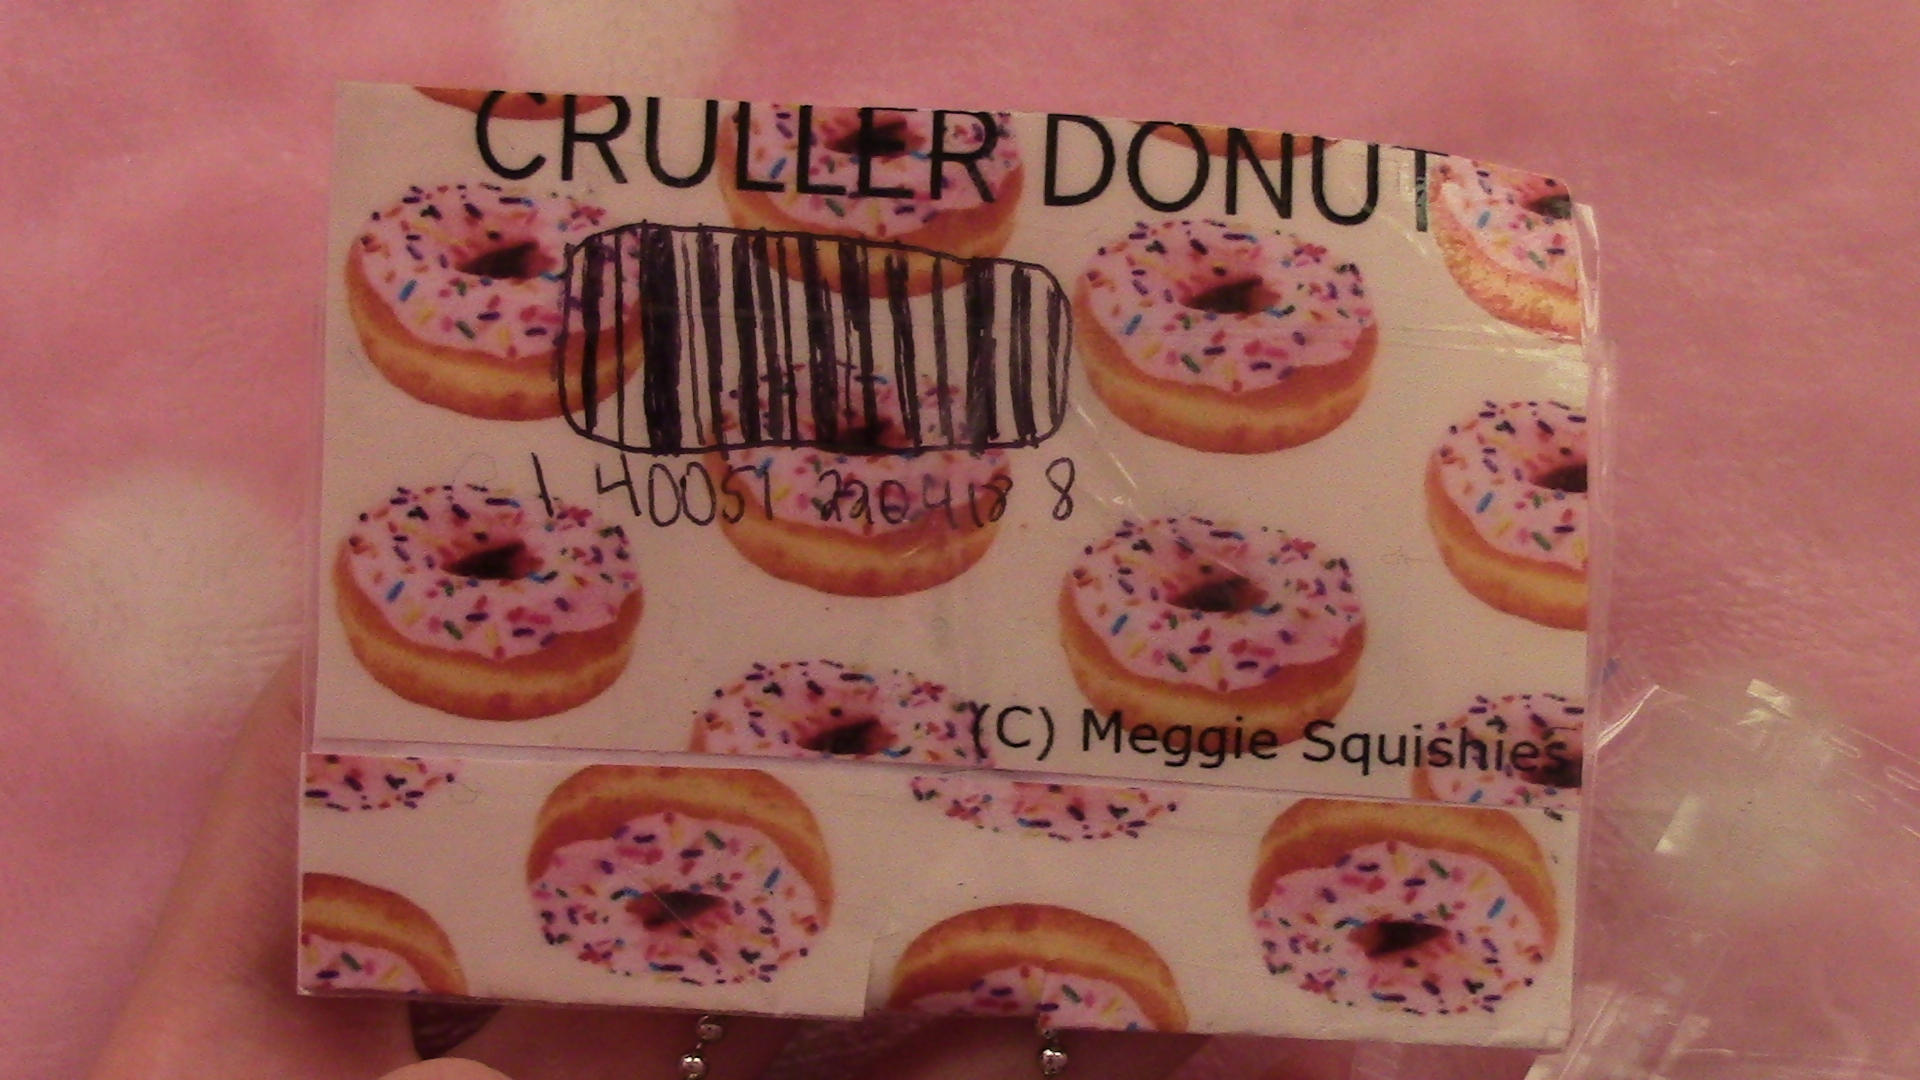 Donut Squishy Collection : Homemade Cruller Donut Squishy ? Kawaii Meg ? Online Store Powered by Storenvy